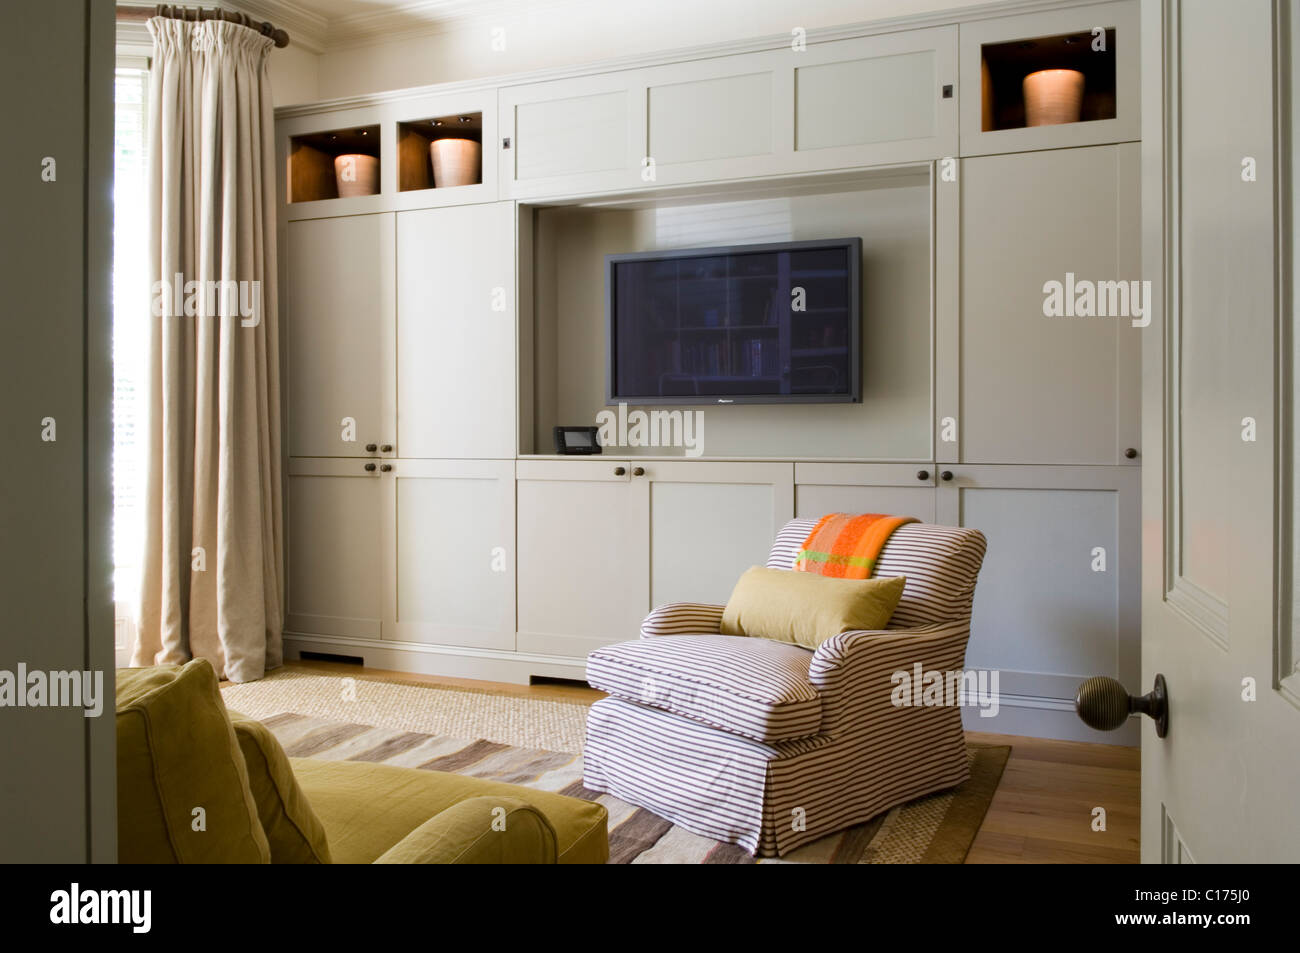 flat screen tv in living room with built in cupboards and armchair rh alamy com Living Room with Flat Screen flat screen tv in small living room